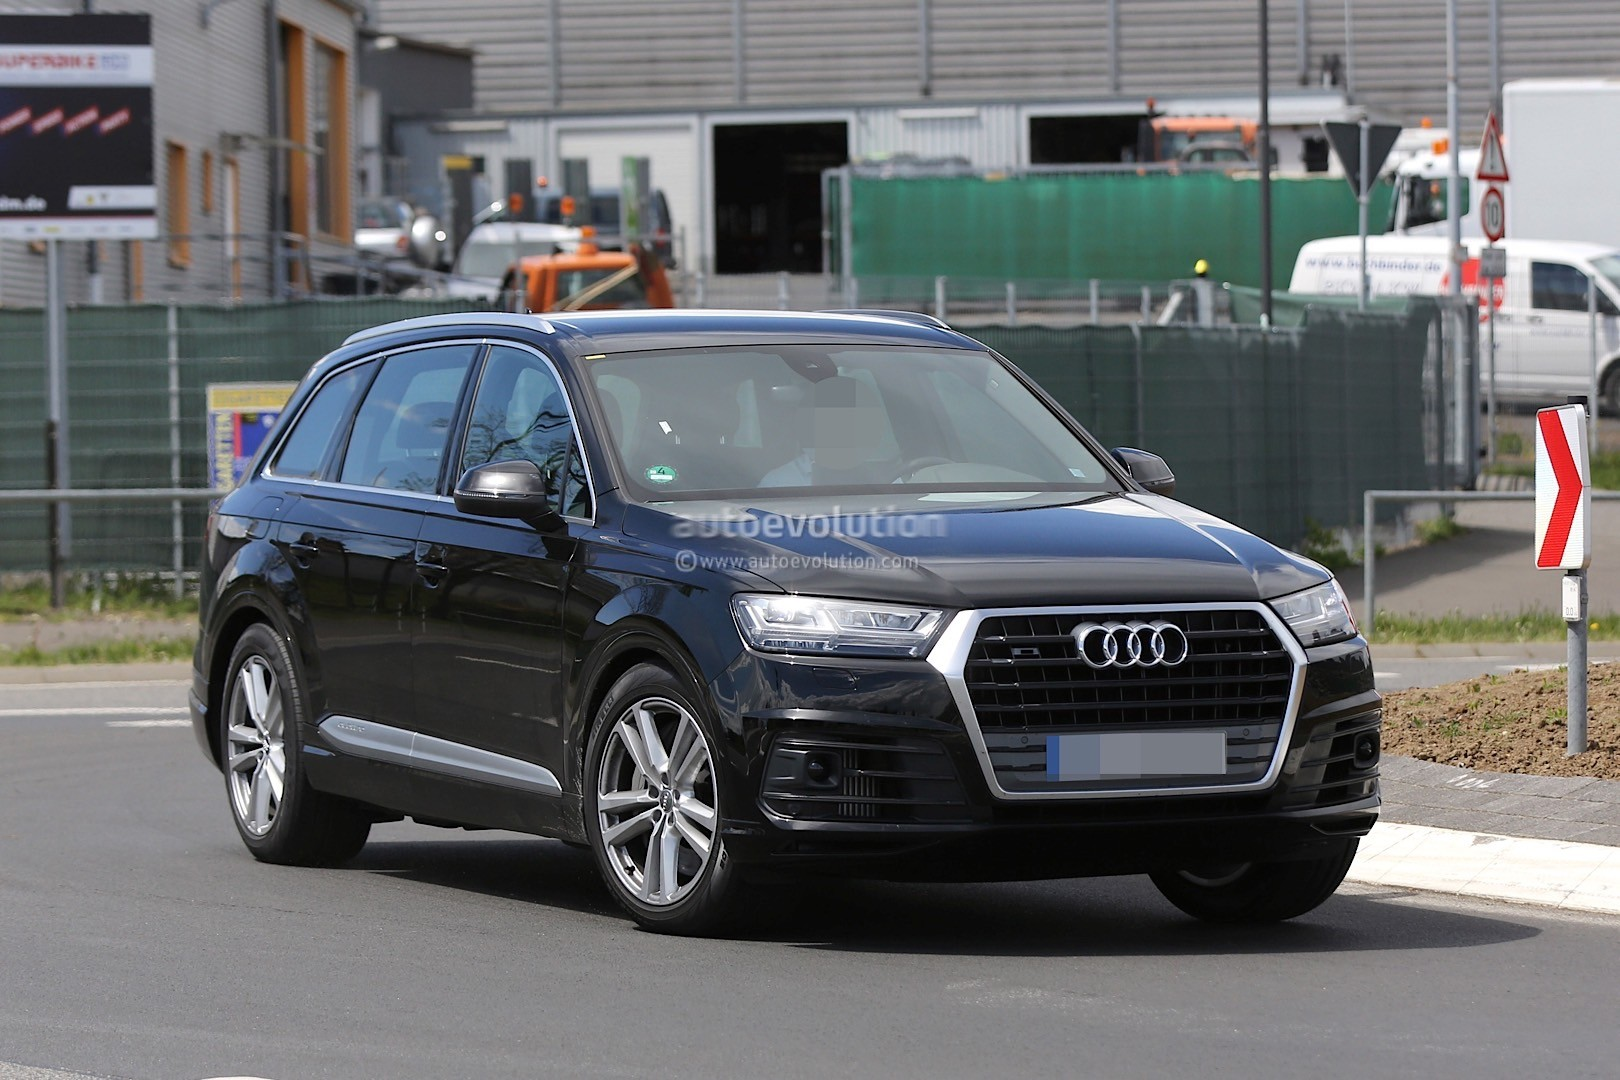 audi sq7 will pack new 4 0 tdi with 435 ps spec sheet suggests autoevolution. Black Bedroom Furniture Sets. Home Design Ideas